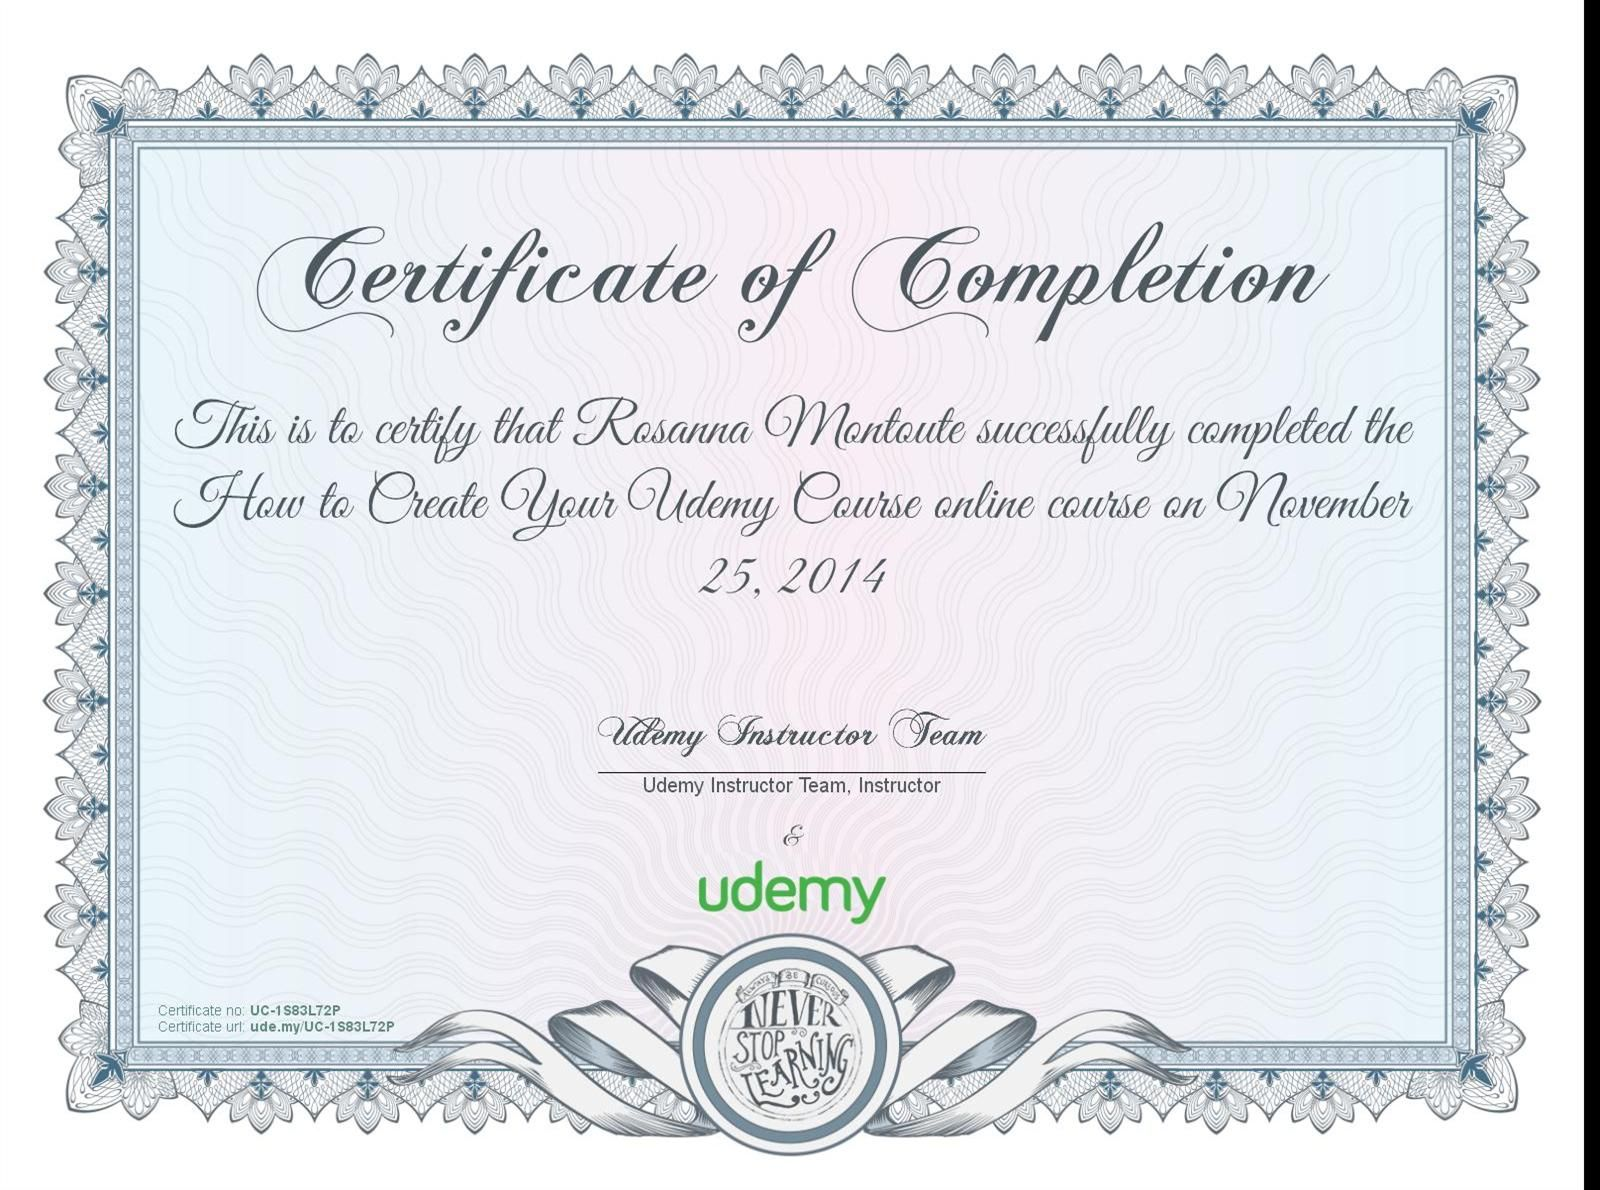 Rhyme's acquisition cost, andrew ng's deeplearning.ai revenue, no. Completion certificate for How to Create Your Udemy Course ...